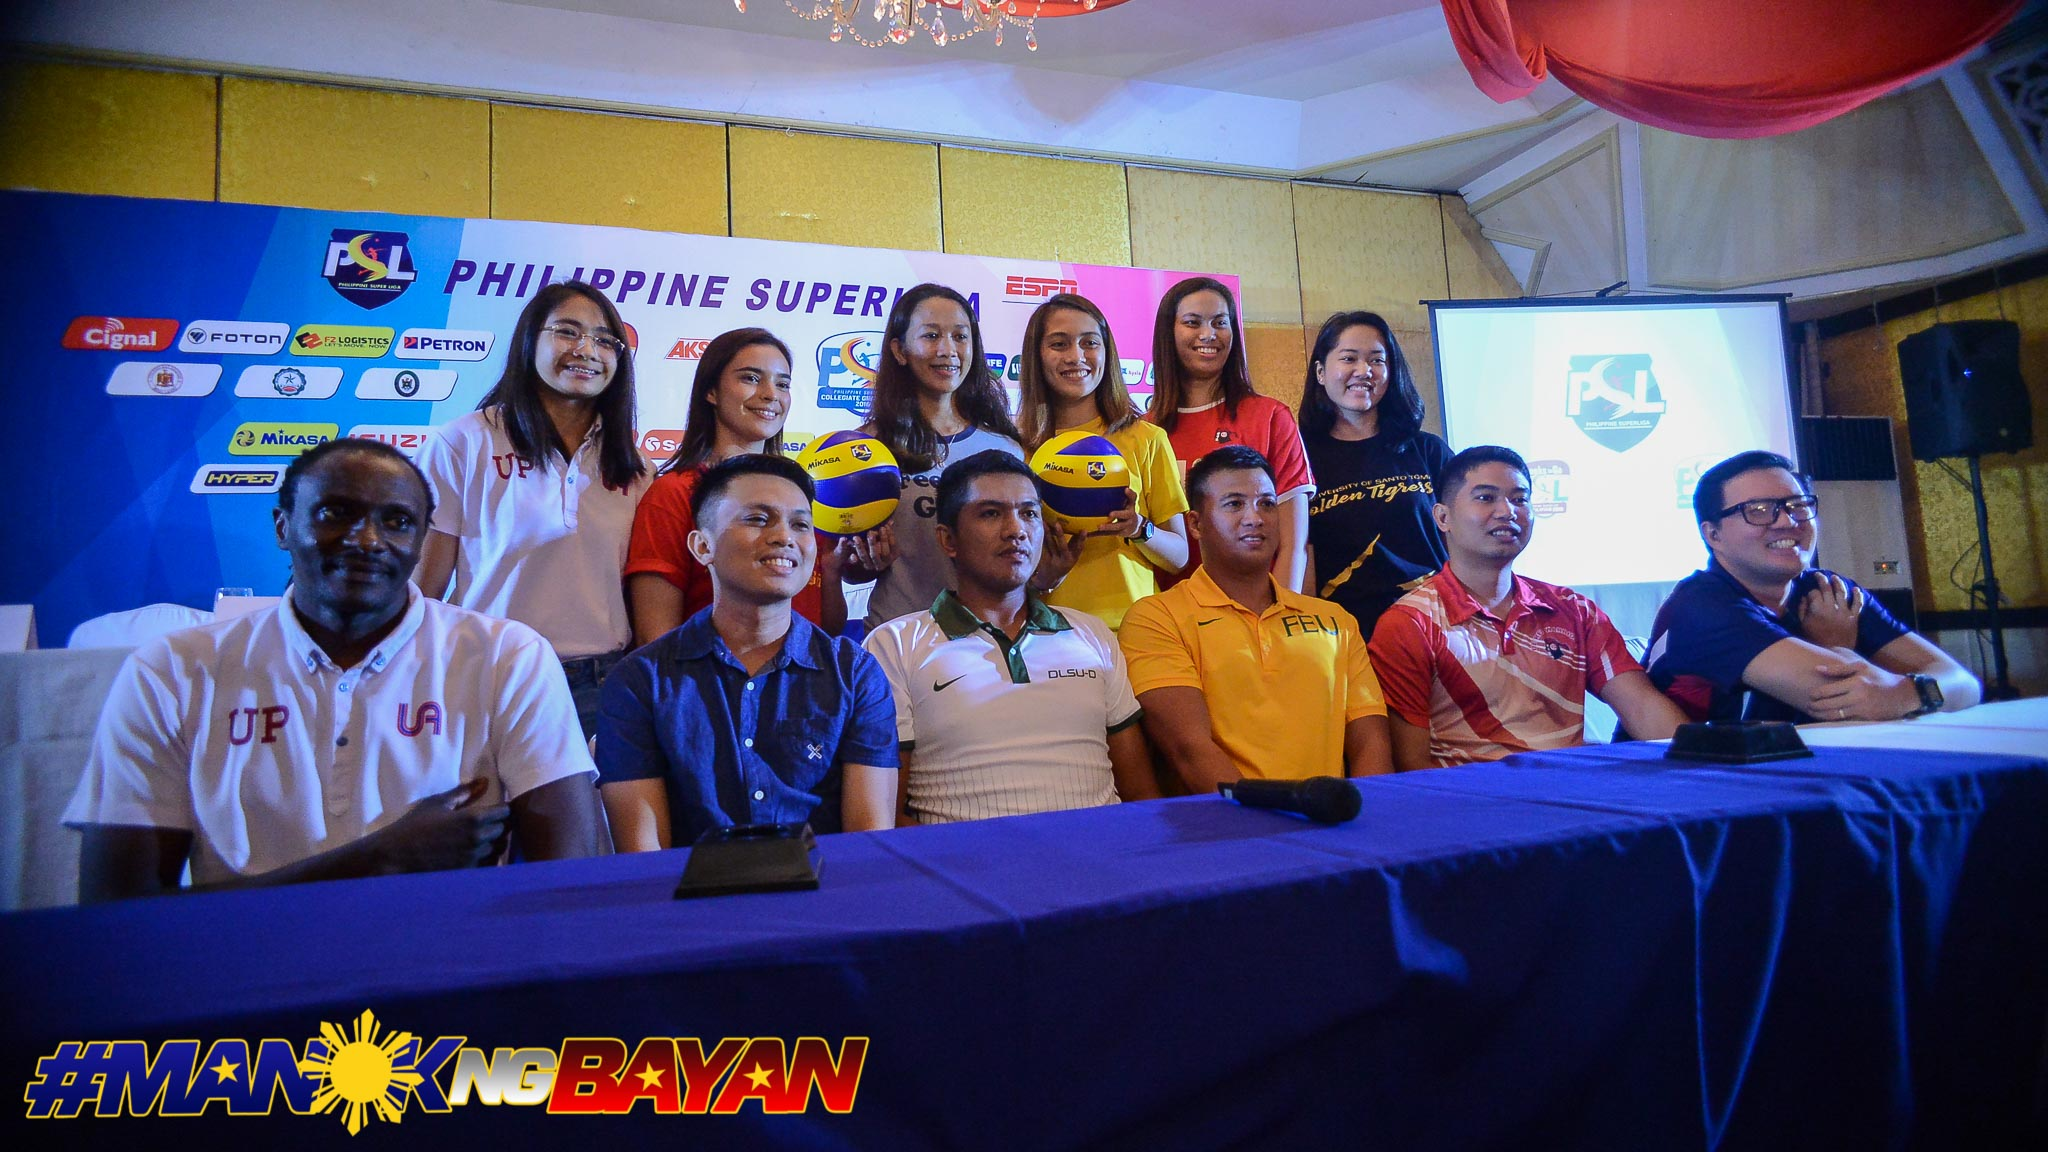 Tiebreaker Times PSL Collegiate Grand Slam winner to get Thailand training camp FEU News PSL UE UP UST Volleyball  UST Women's Volleyball UP Women's Volleyball UE Women's Volleyball FEU Women's Volleyball DLSU-Dasmarinas Lady Patriots Colegio San Agustin-Binan Eagles 2018 PSL Season 2018 PSL Collegiate Grand Slam